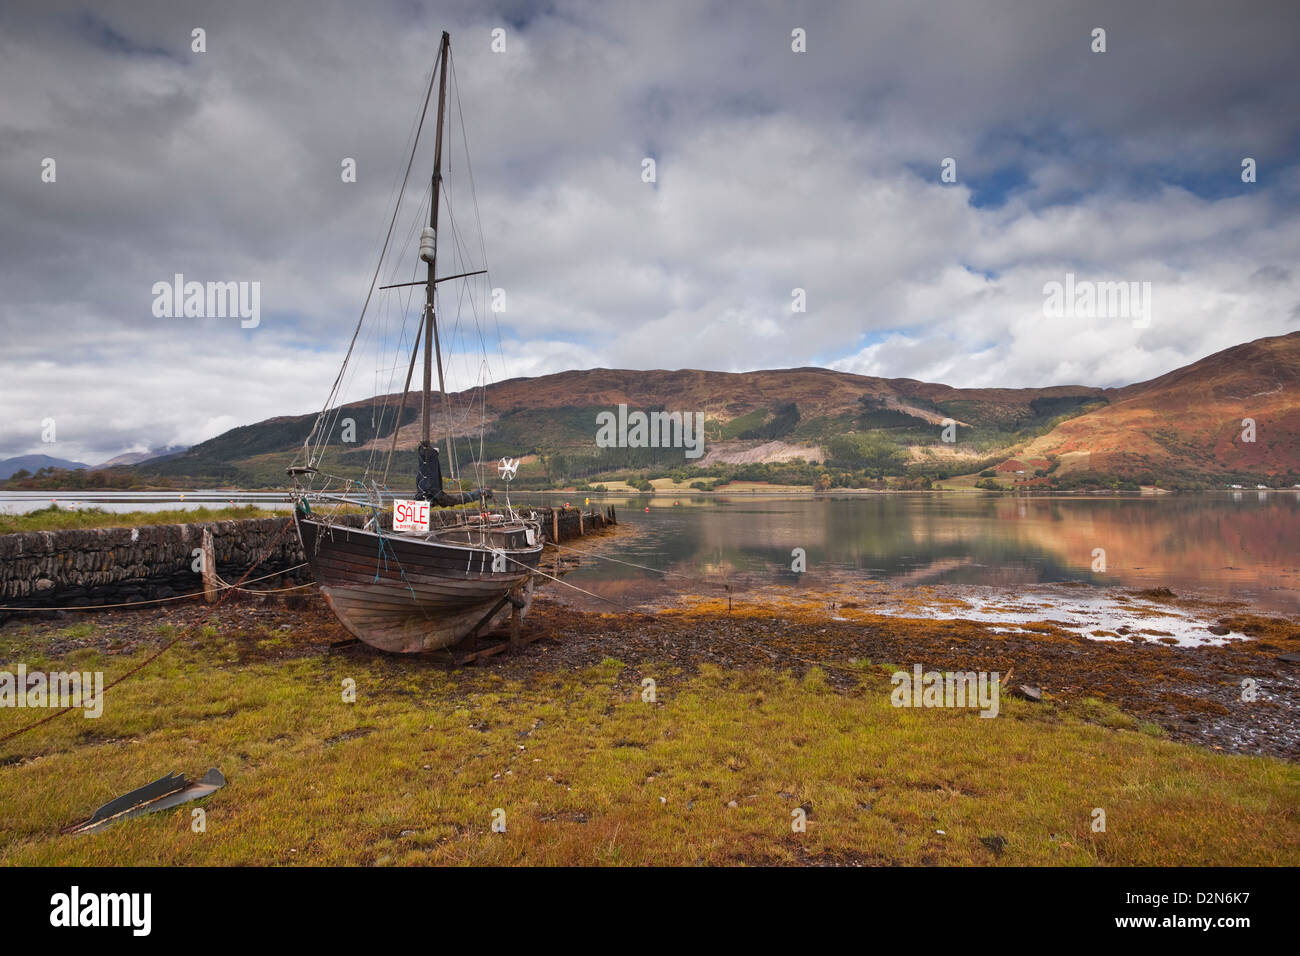 An old boat sits on the shore of Loch Leven in Glencoe, Highlands, Scotland, United Kingdom, Europe - Stock Image